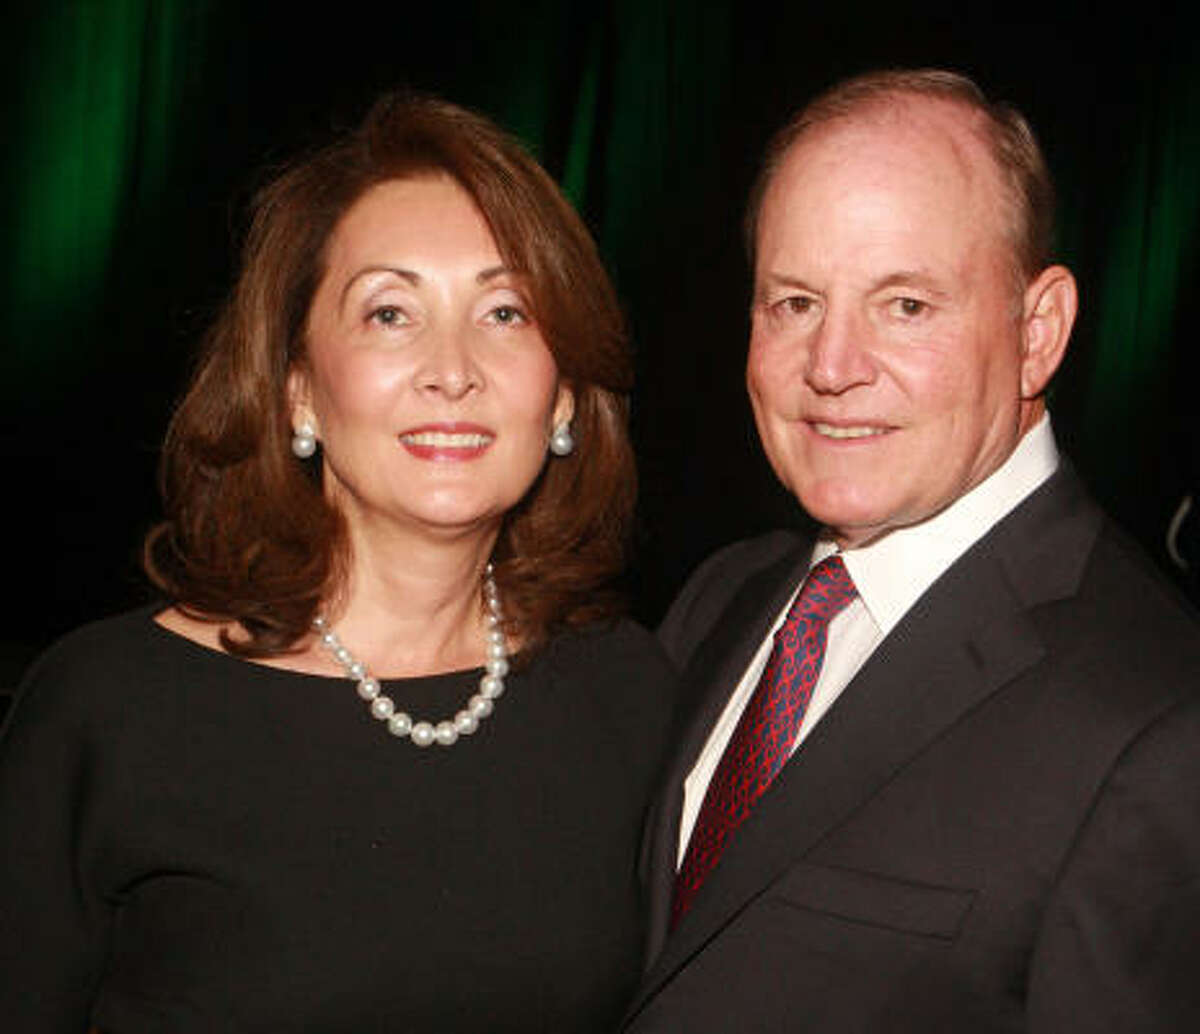 The gala honored Penny and Paul Loyd Jr.